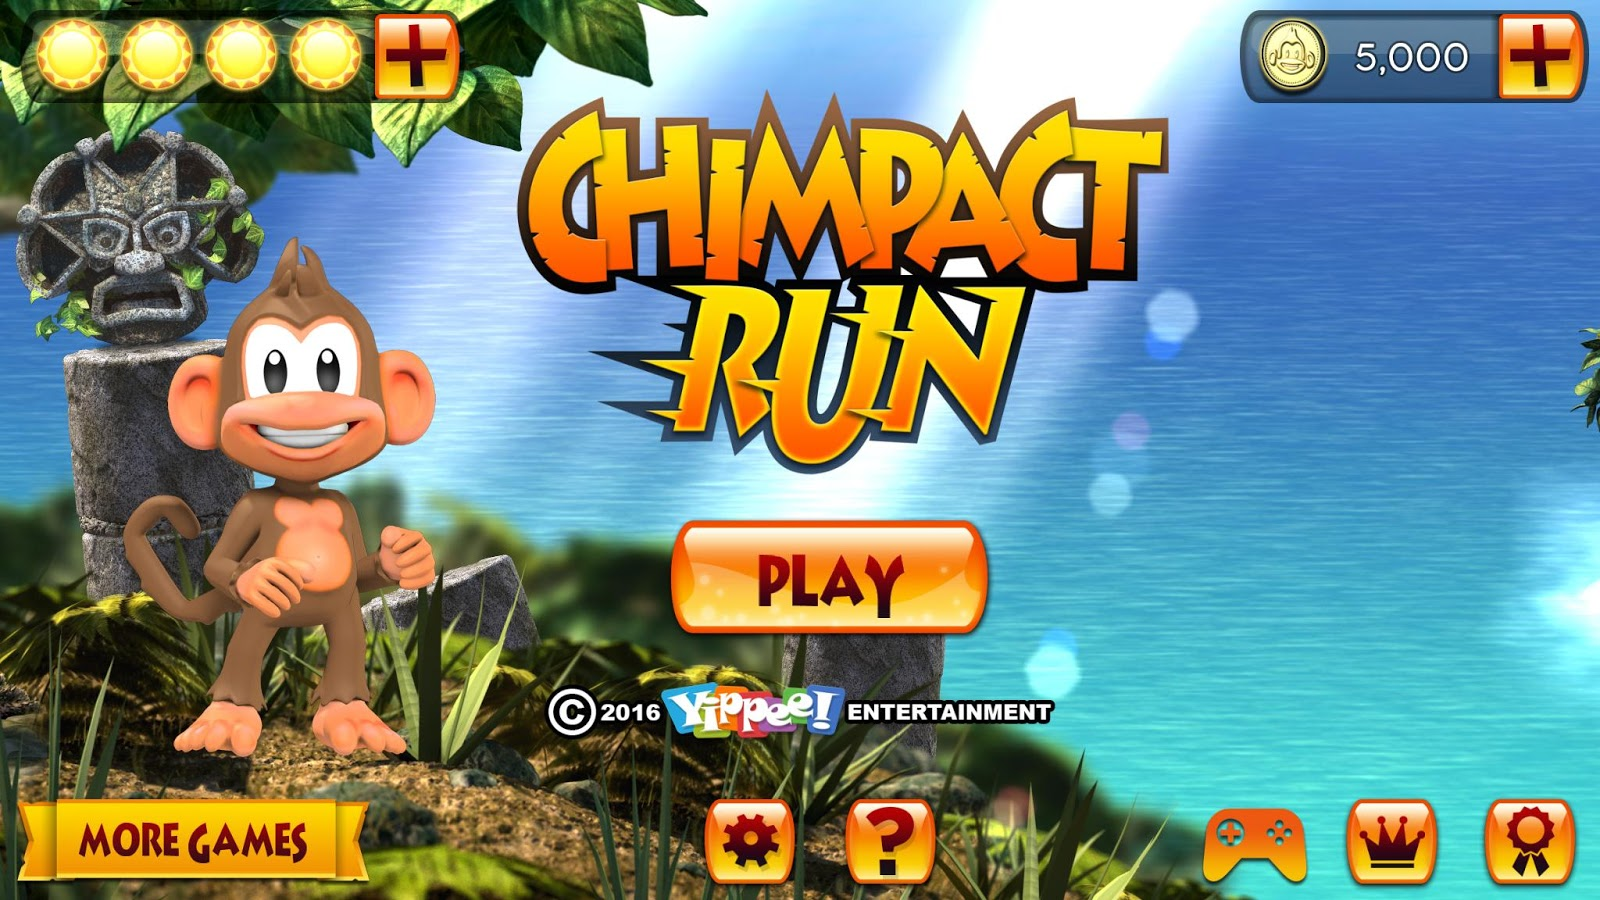 Chimpact Run (Pay Once No-IAP) Screenshot 7